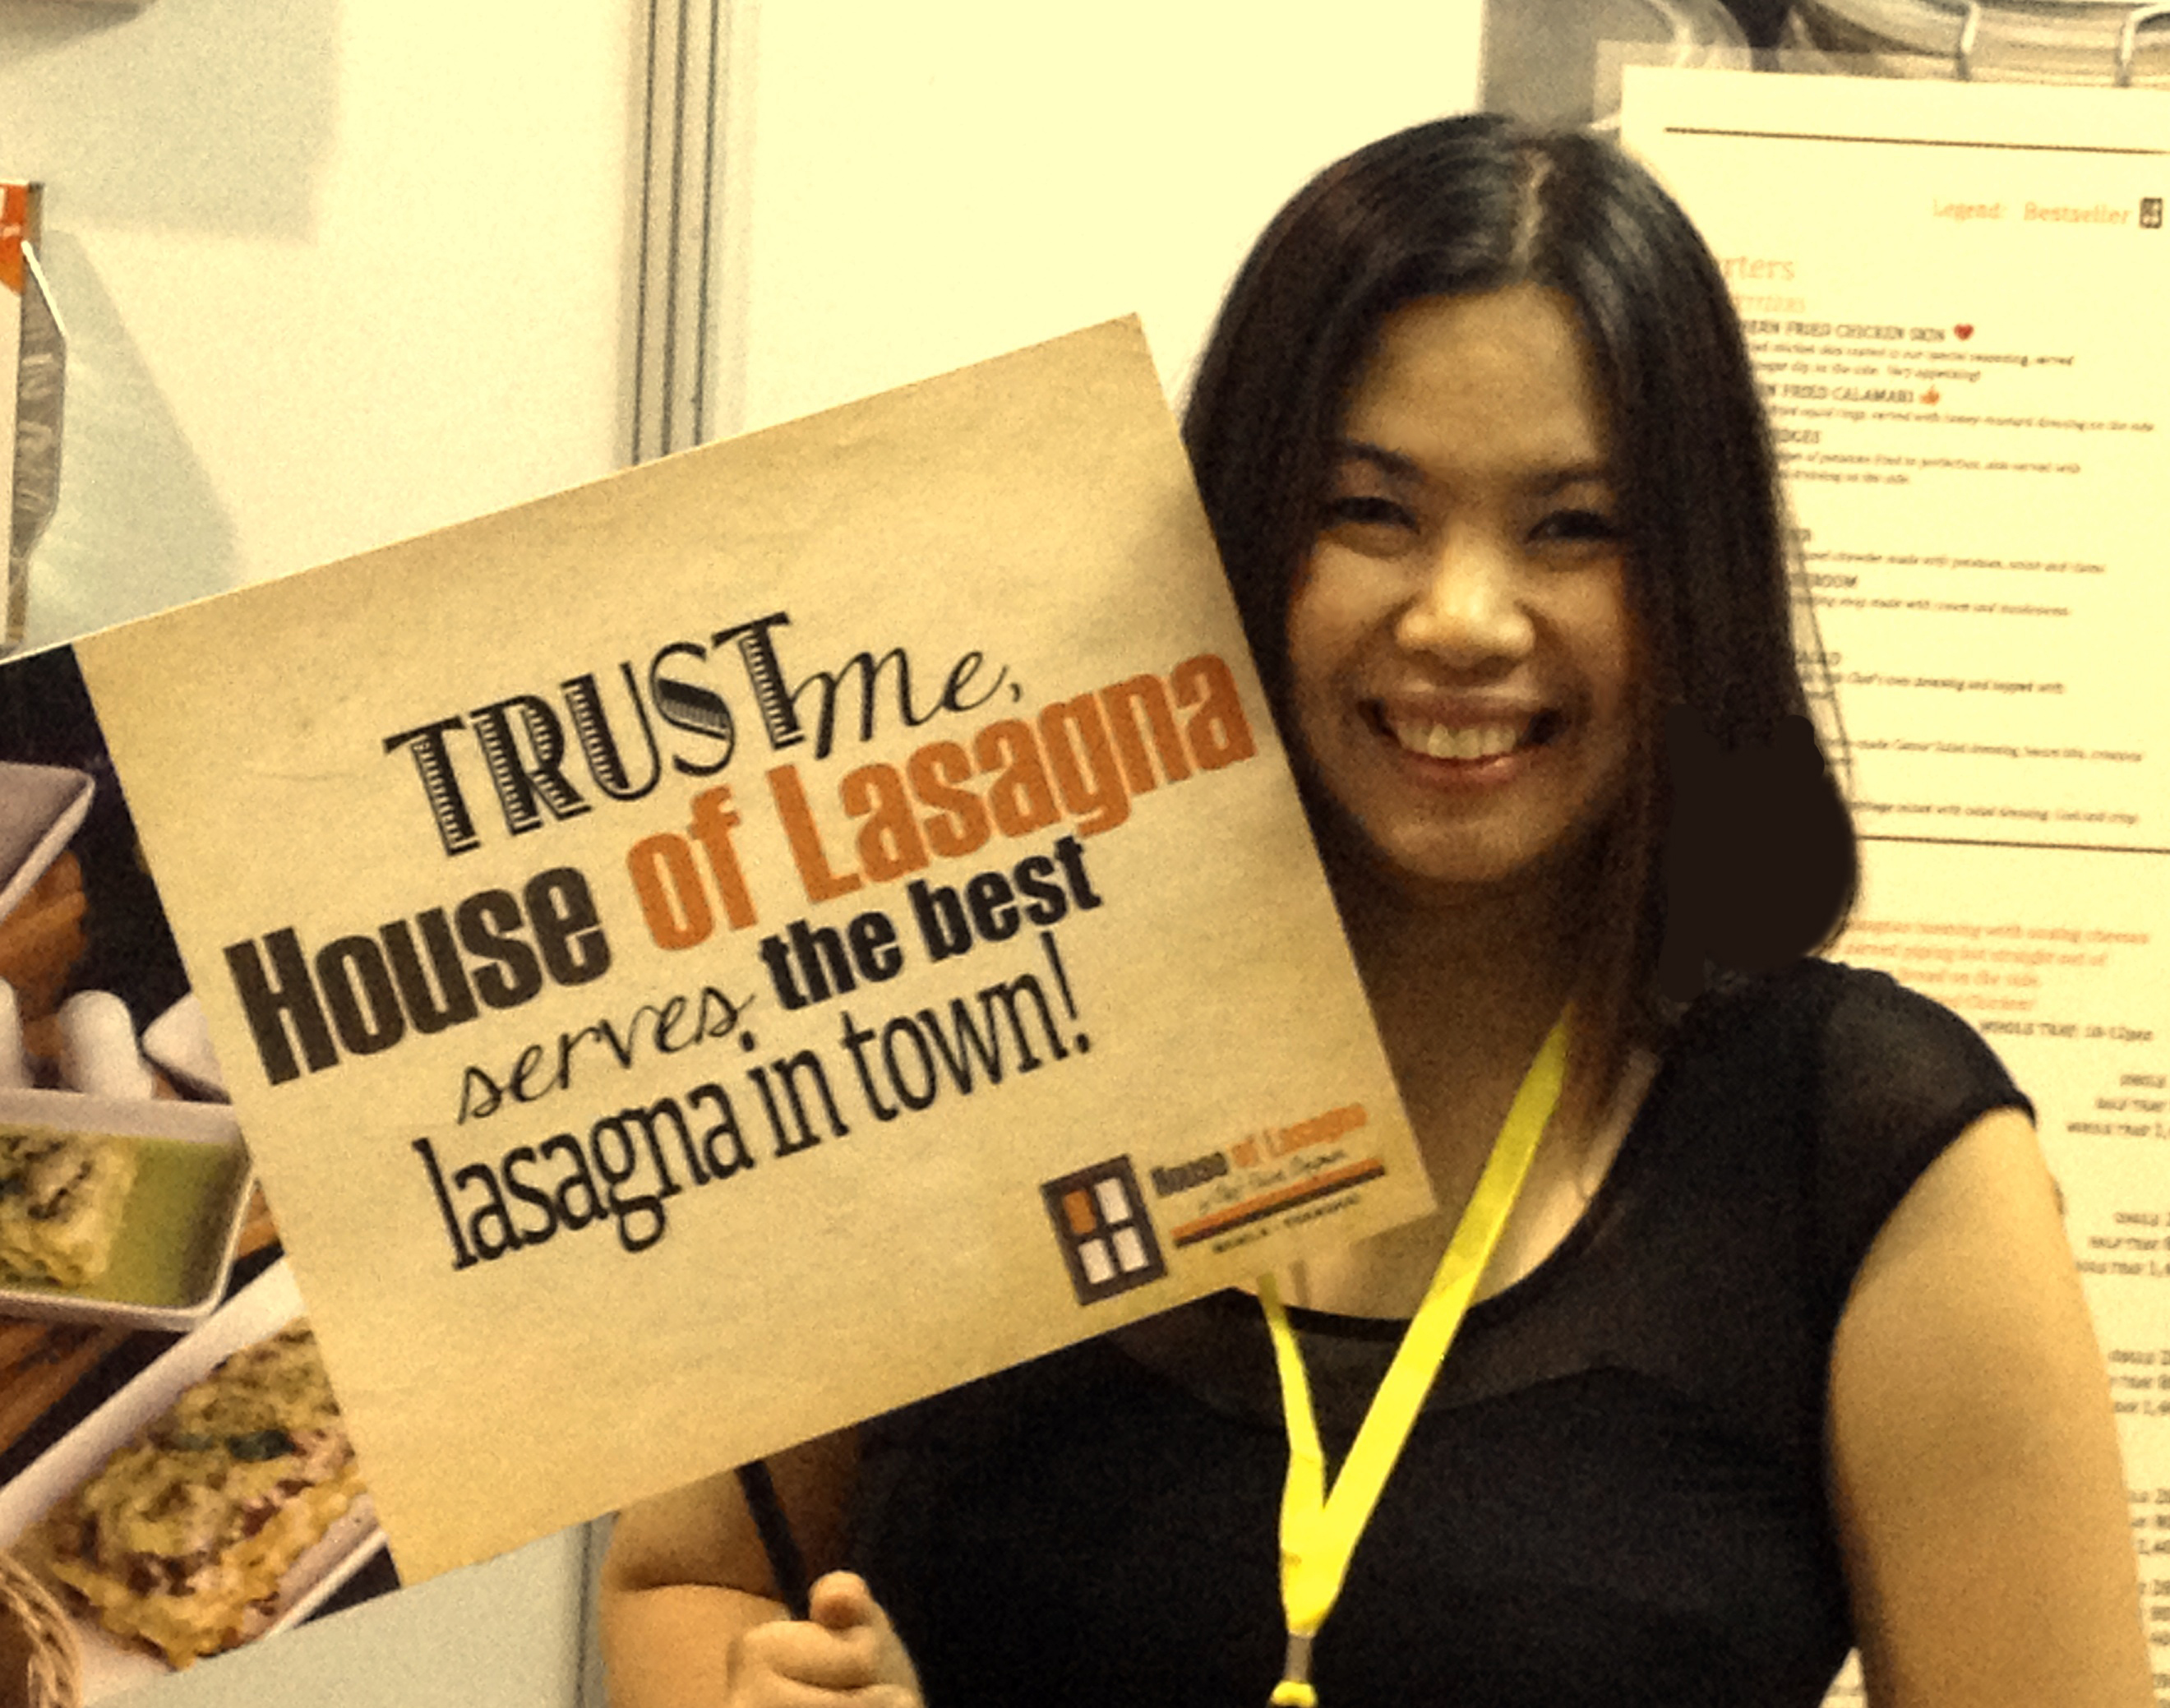 House of Lasagna @ Blogapalooza 2014